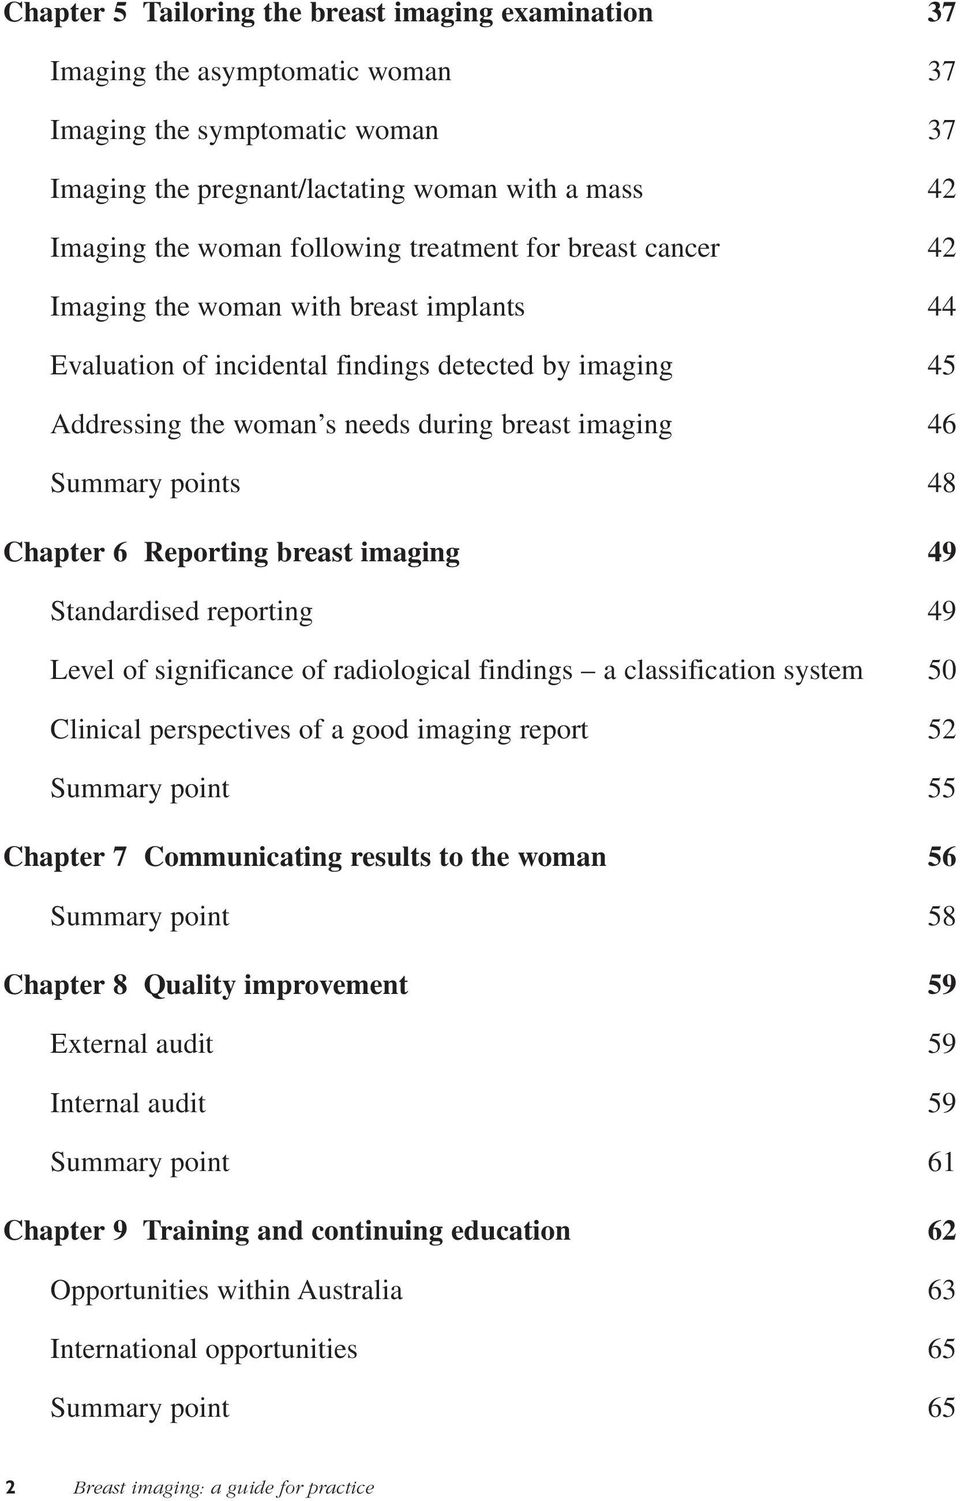 Summary points 48 Chapter 6 Reporting breast imaging 49 Standardised reporting 49 Level of significance of radiological findings a classification system 50 Clinical perspectives of a good imaging